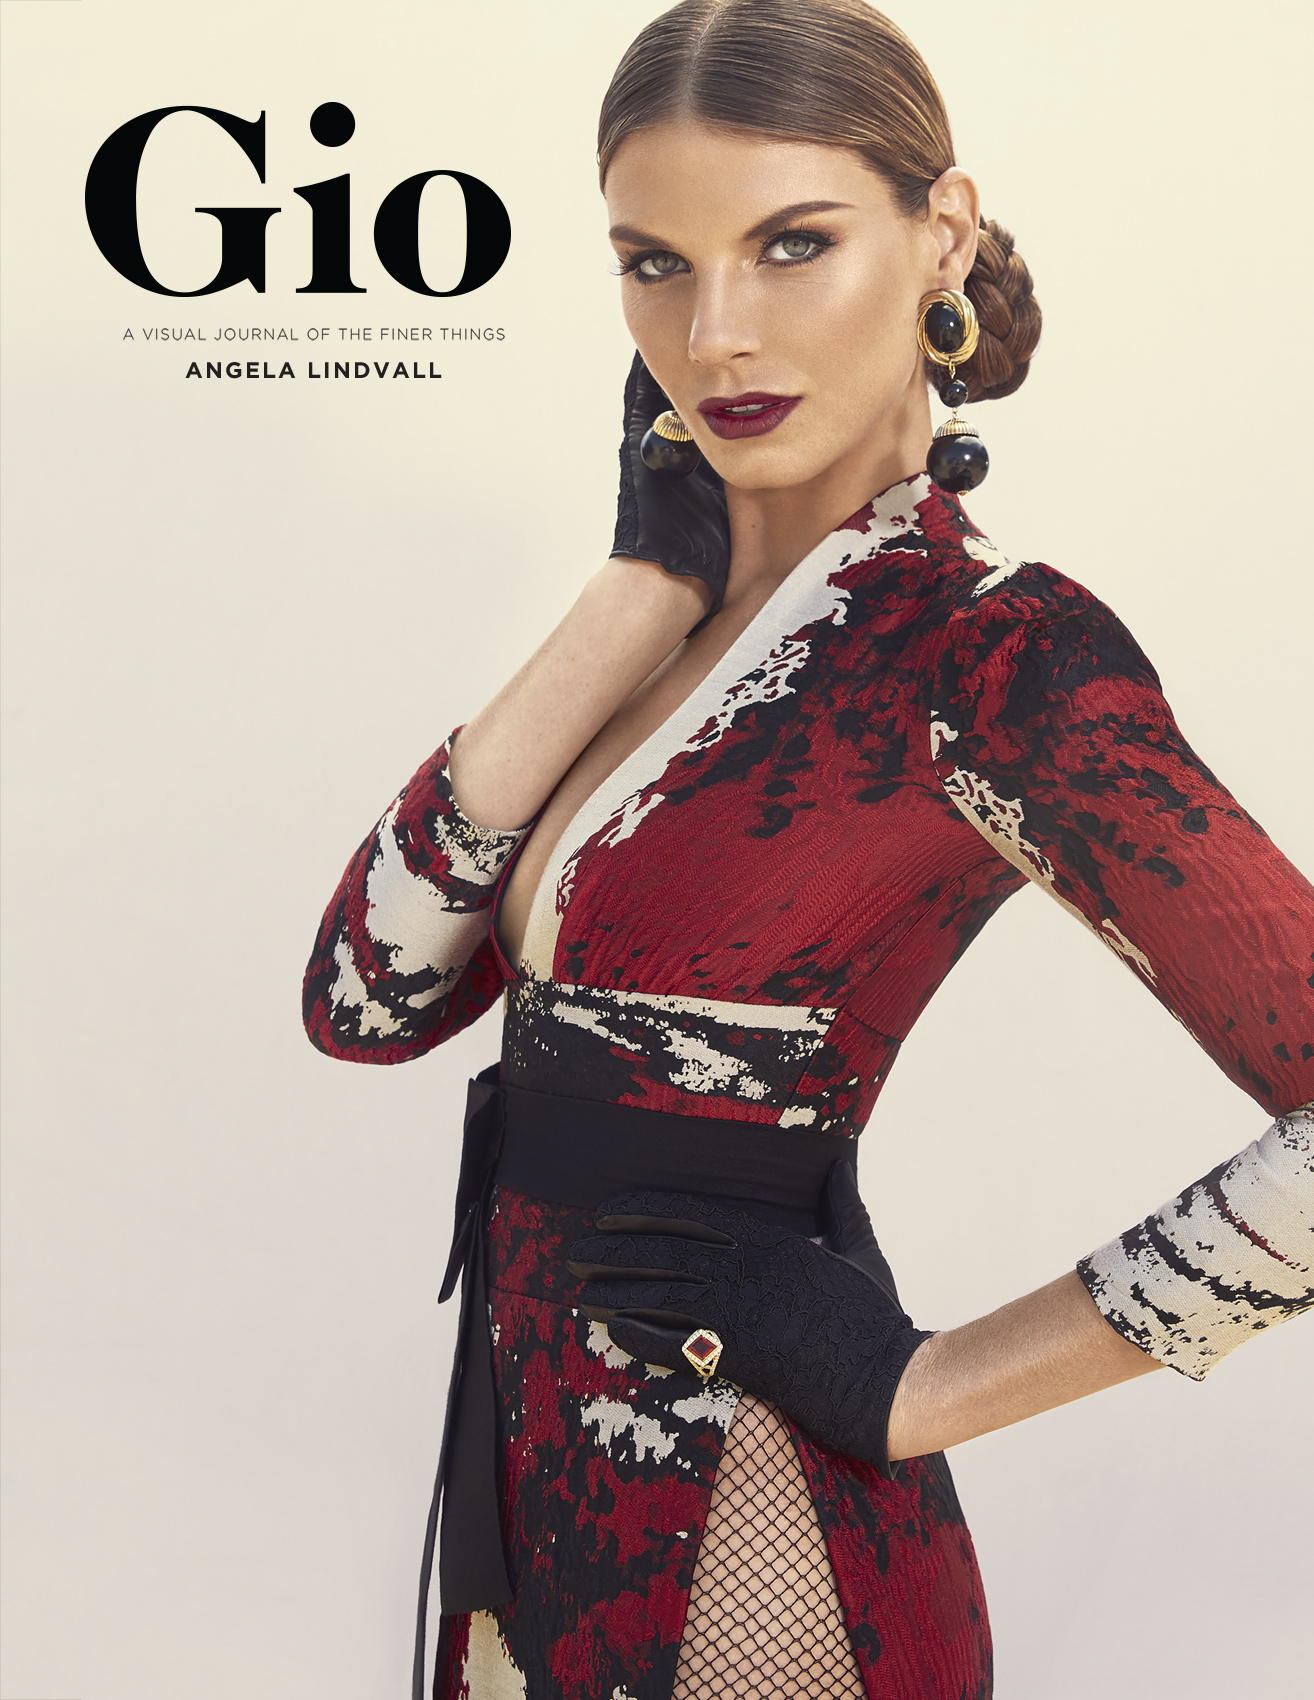 Angela_Gio_Cover_web